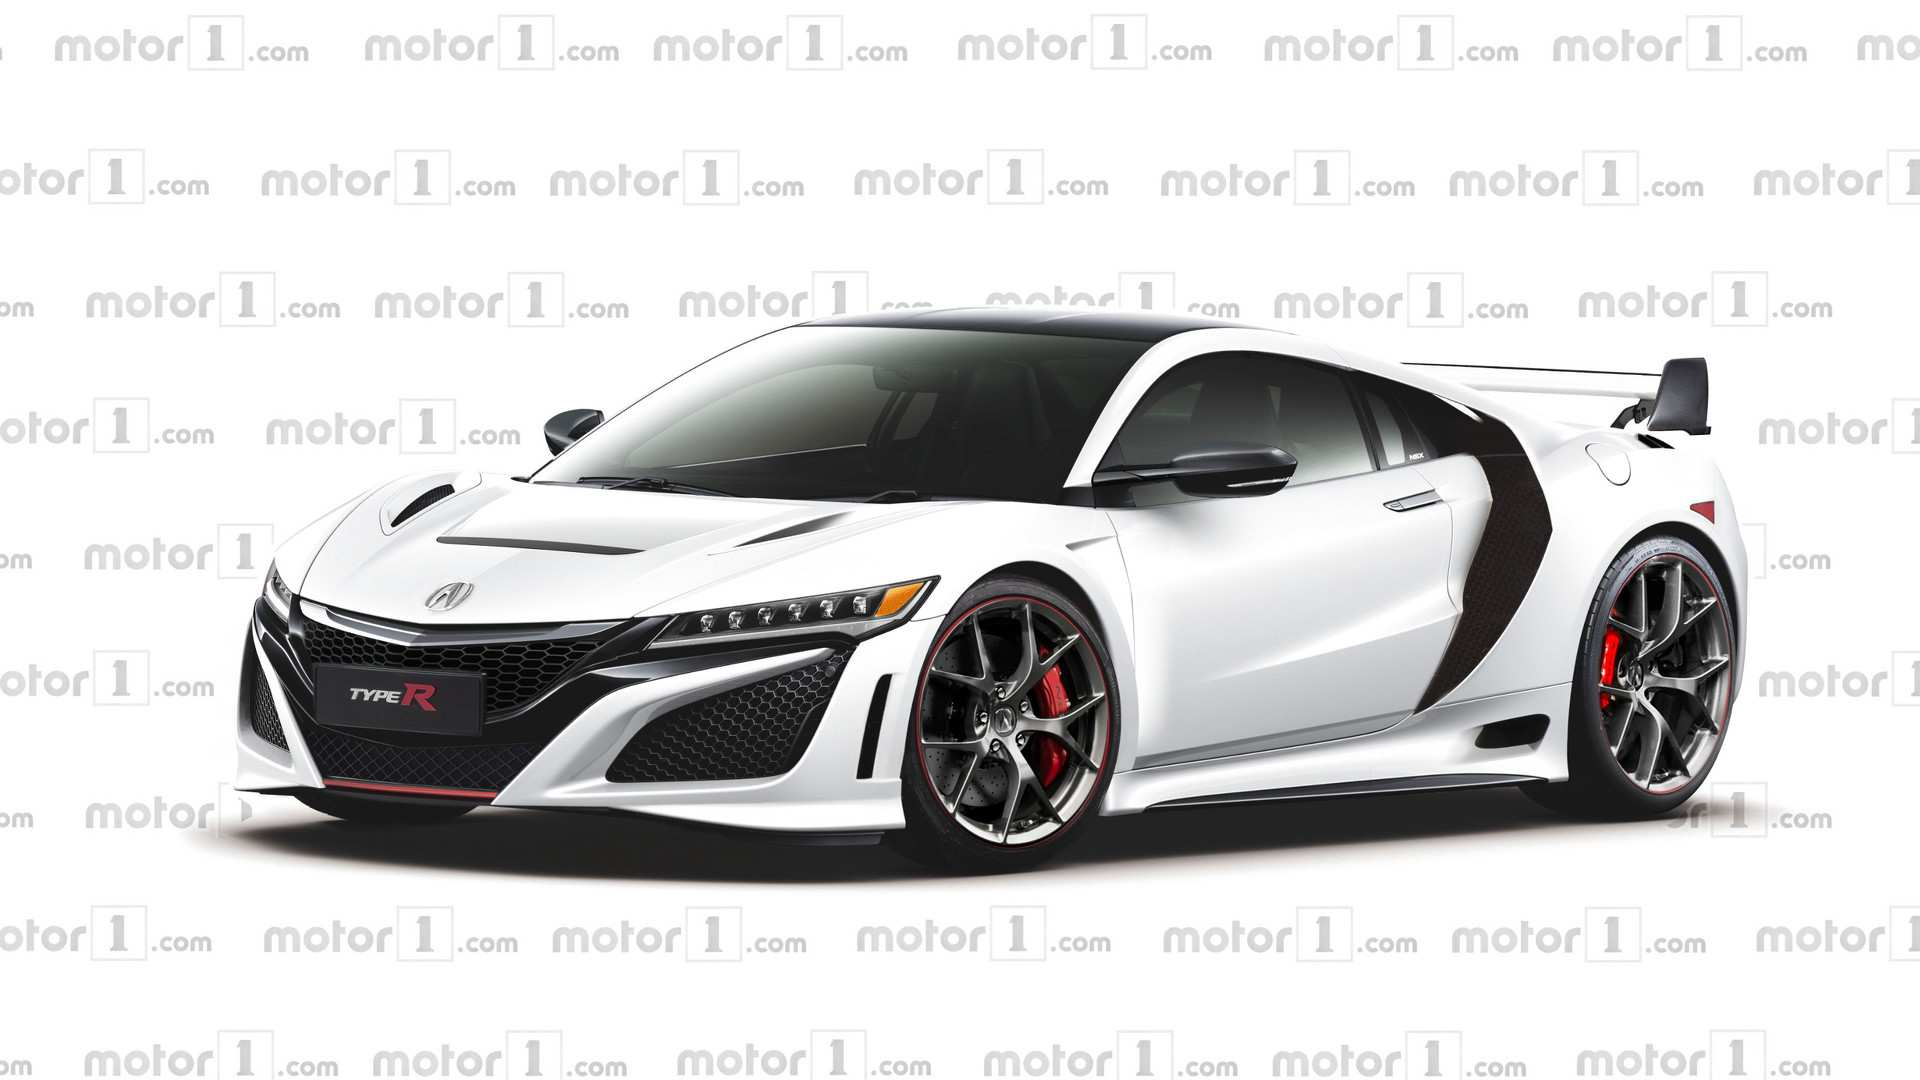 63 All New 2020 Acura Nsx Type R Wallpaper